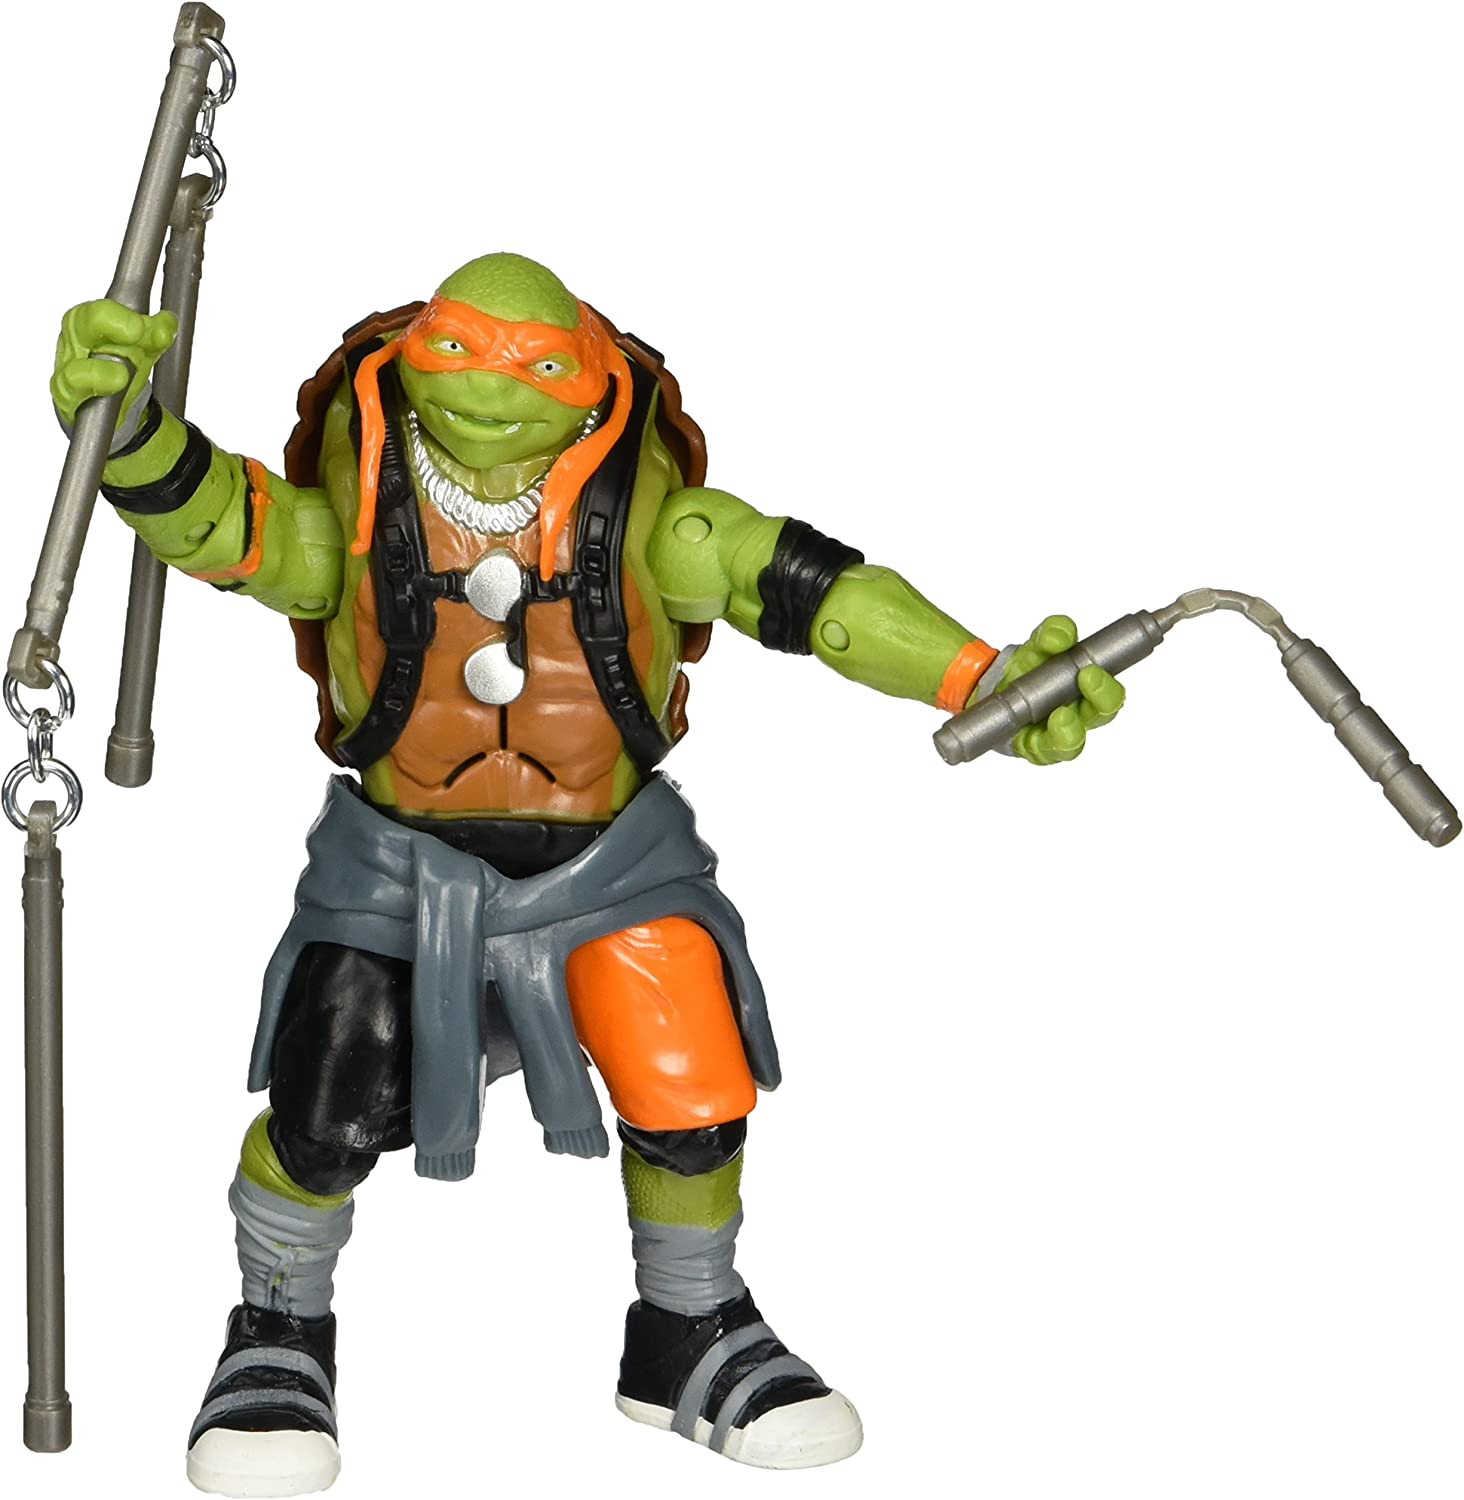 Amazon Com Teenage Mutant Ninja Turtles Movie 2 Out Of The Shadows Michelangelo Deluxe Figure Toys Games